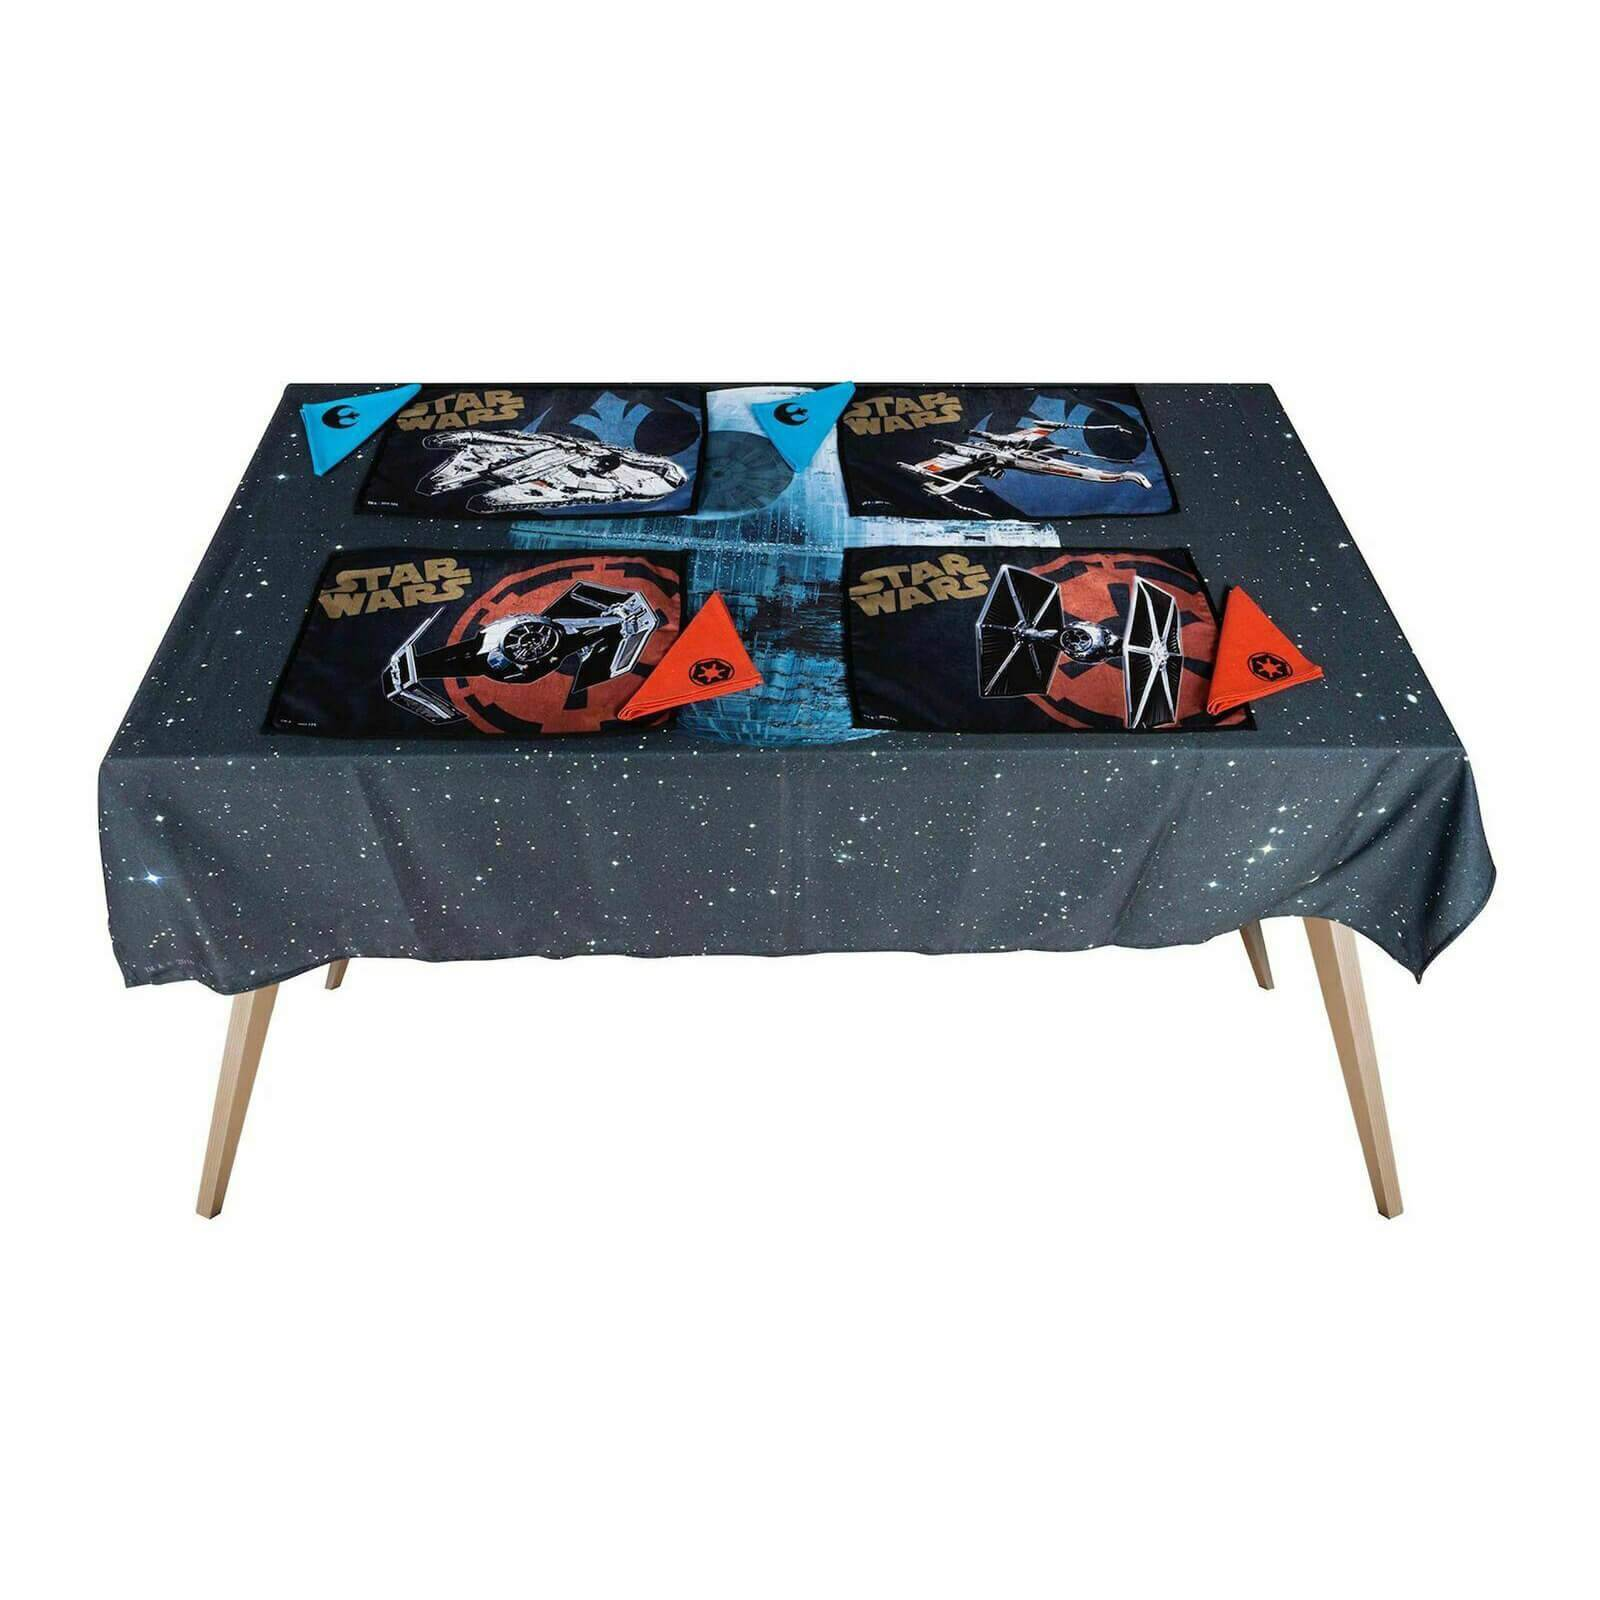 Star Wars Death Star Star Wars Fabric Tablecloth Set (includes 4 Placemats and 4 Napkins)